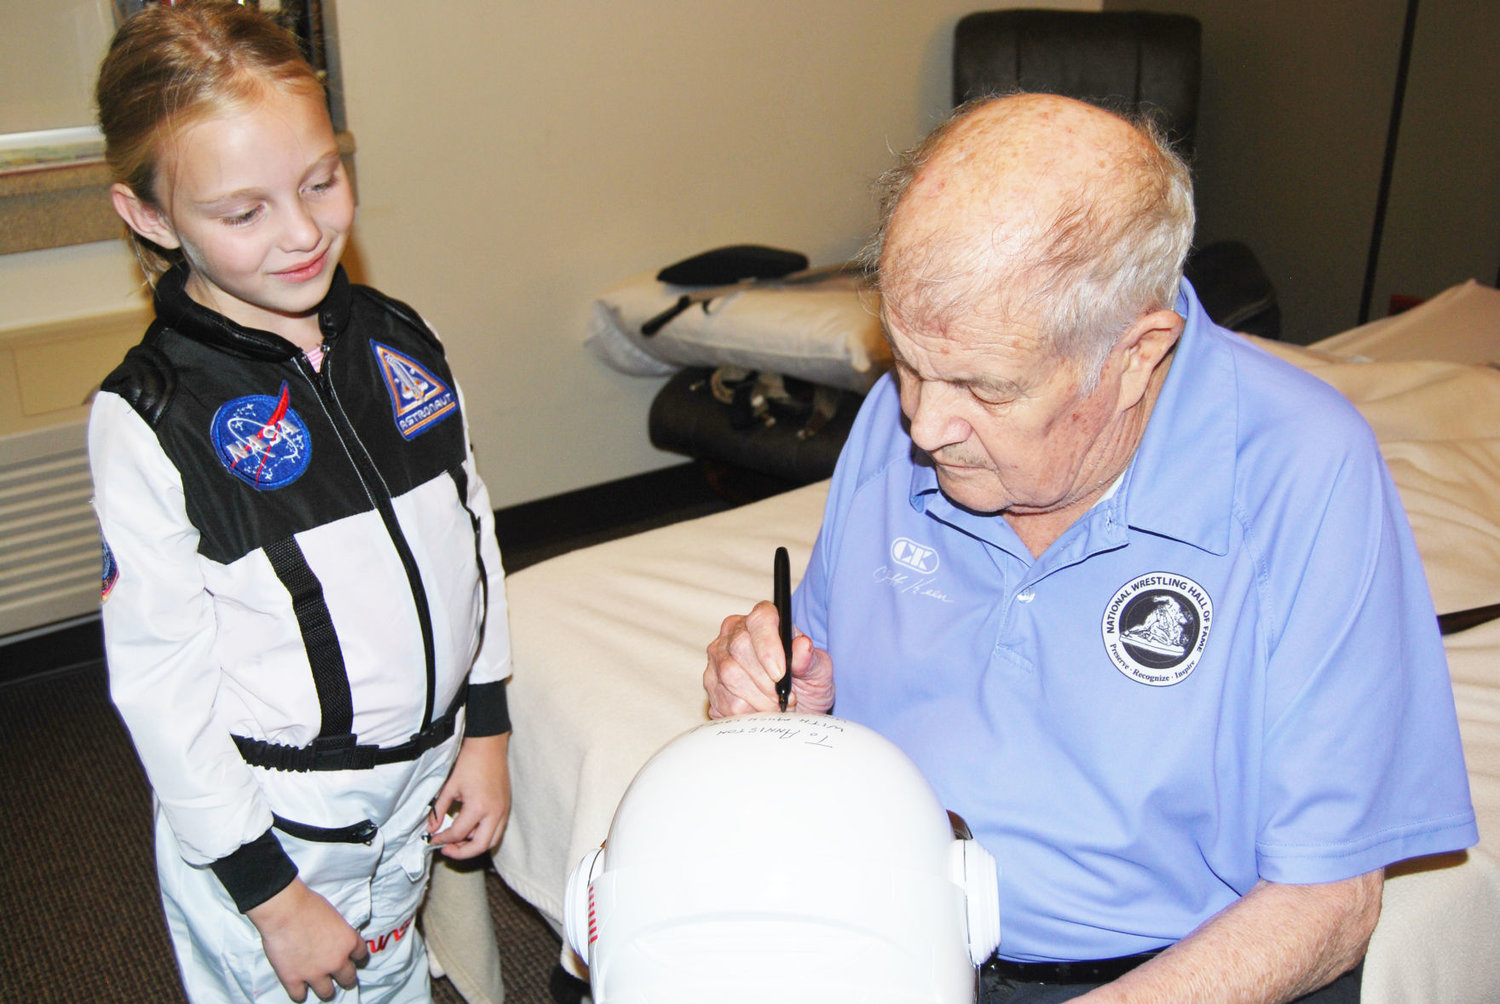 Retired NASA astronaut Joe Allen signs the helmet of Anniston Miles' astronaut costume Tuesday. Anniston plans to dress up as an astronaut for Halloween.